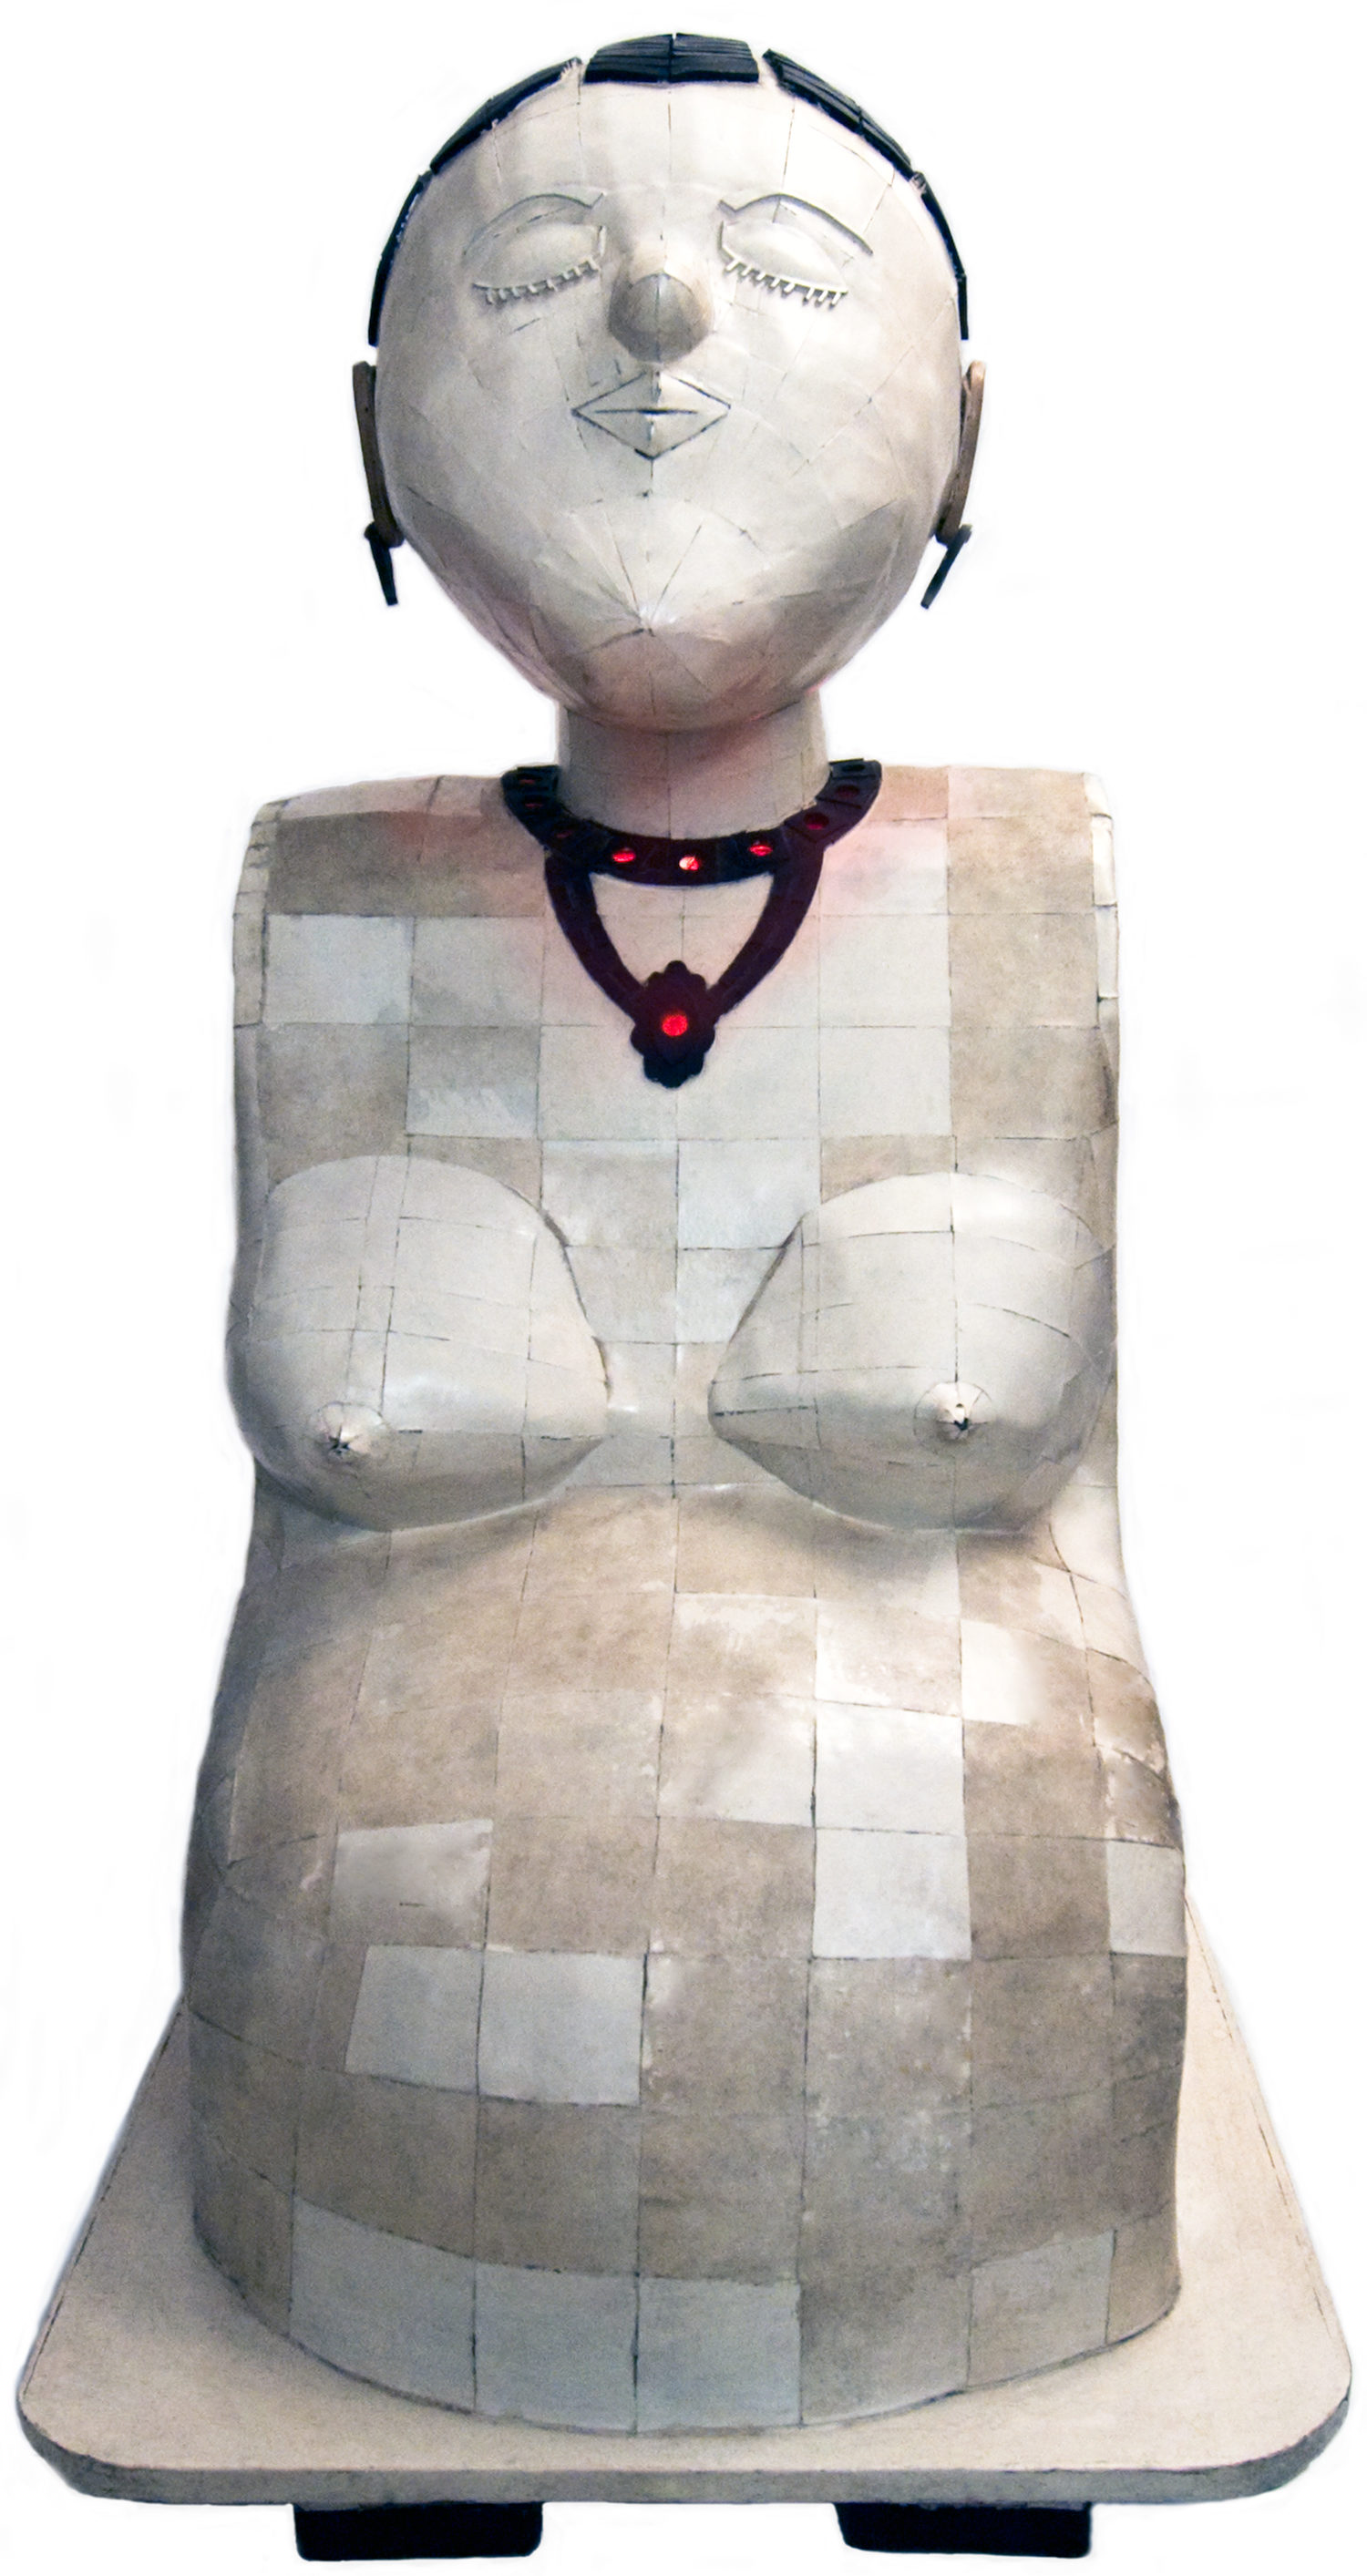 Pume Bylex, 'Maternité', sculpture mix media, 1988-1994